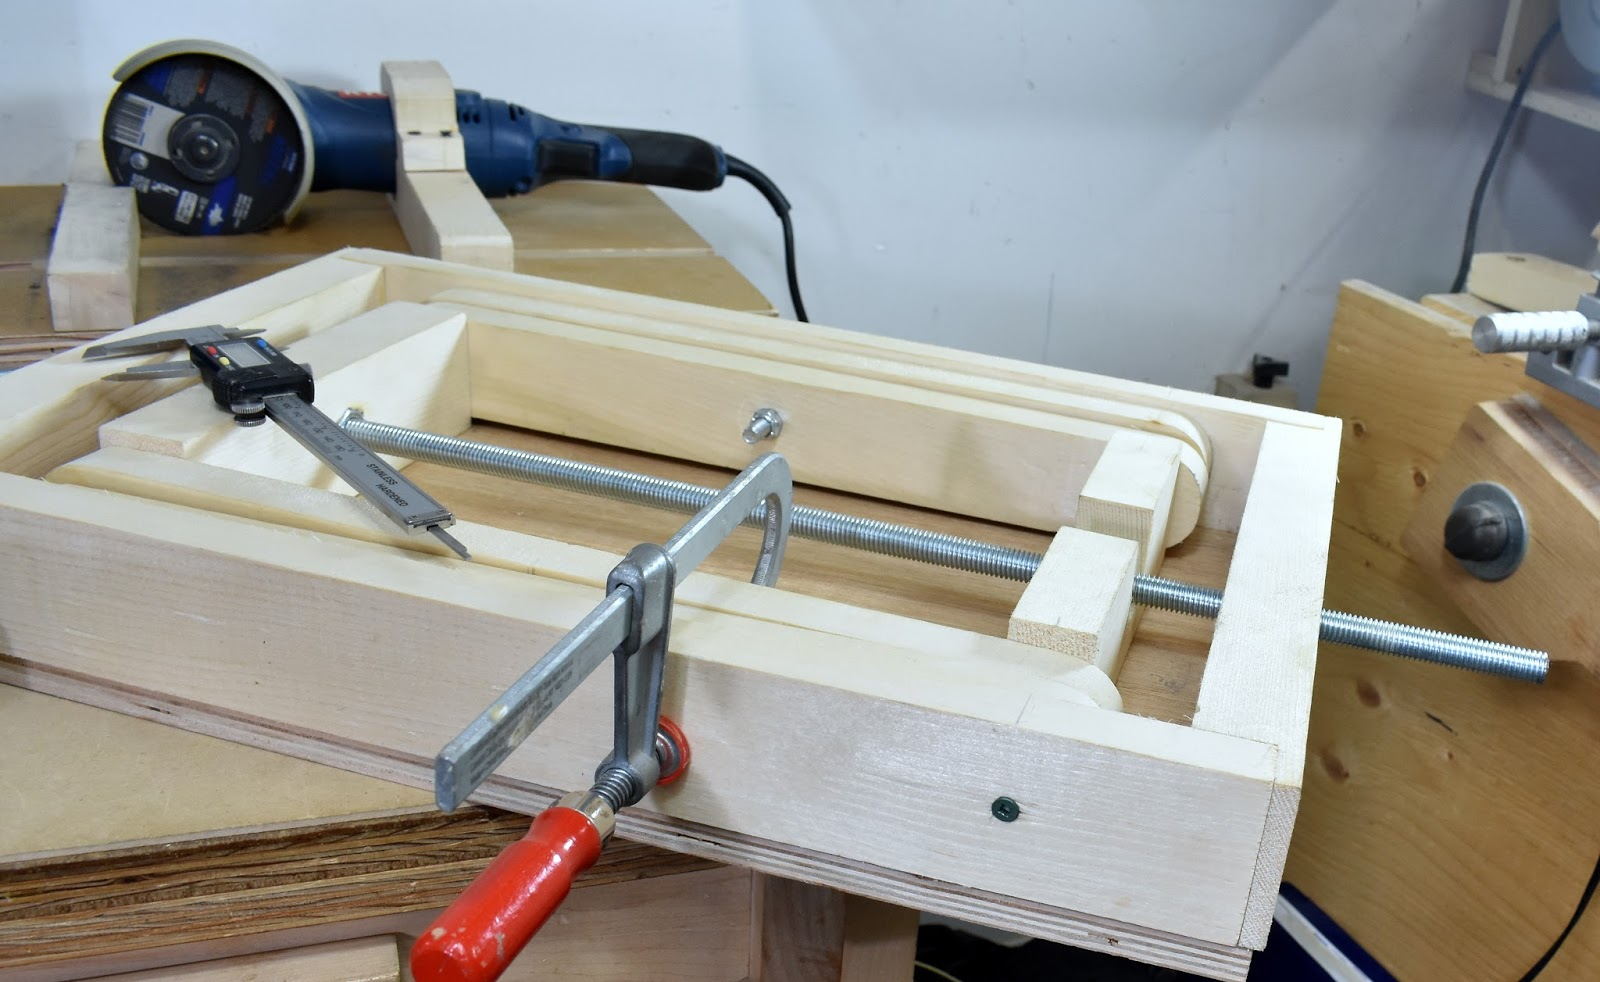 Jax Design: How to Make a Scissor Lift Table